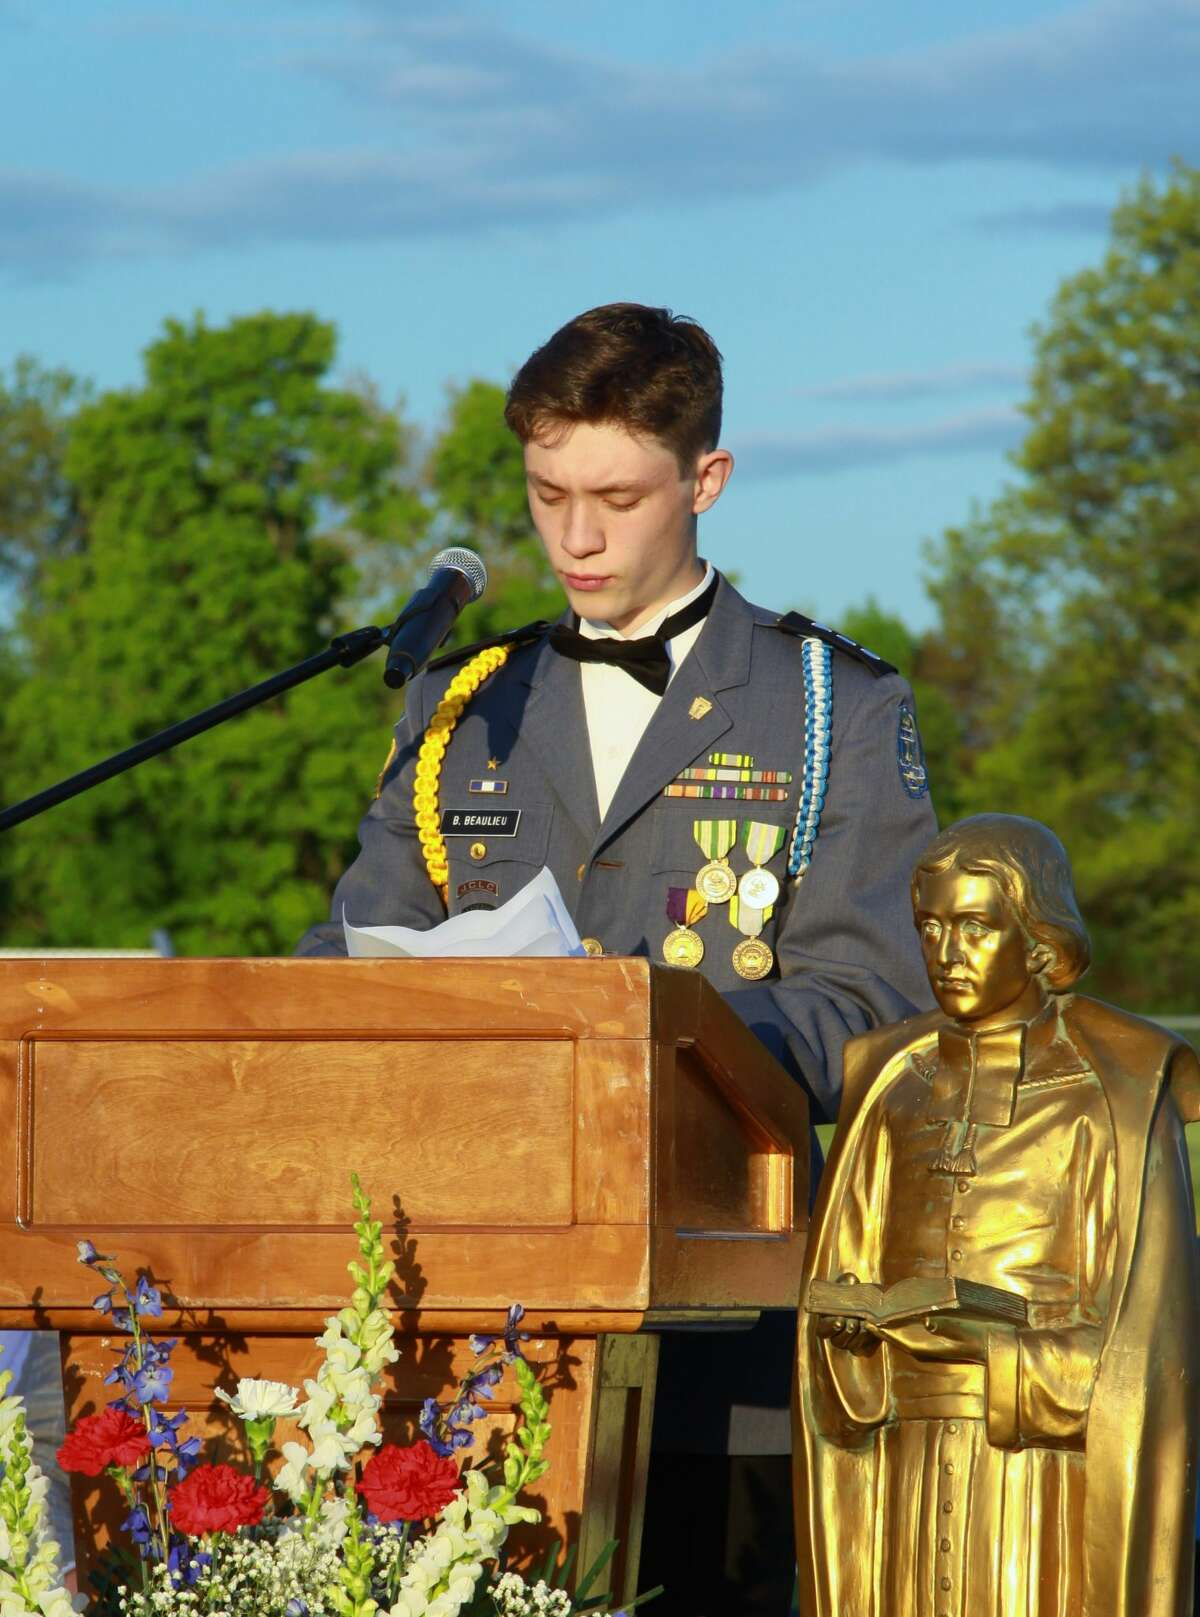 The La Salle Institute valedictory address is given by Bennett F. Beaulieu on May 14, 2021.